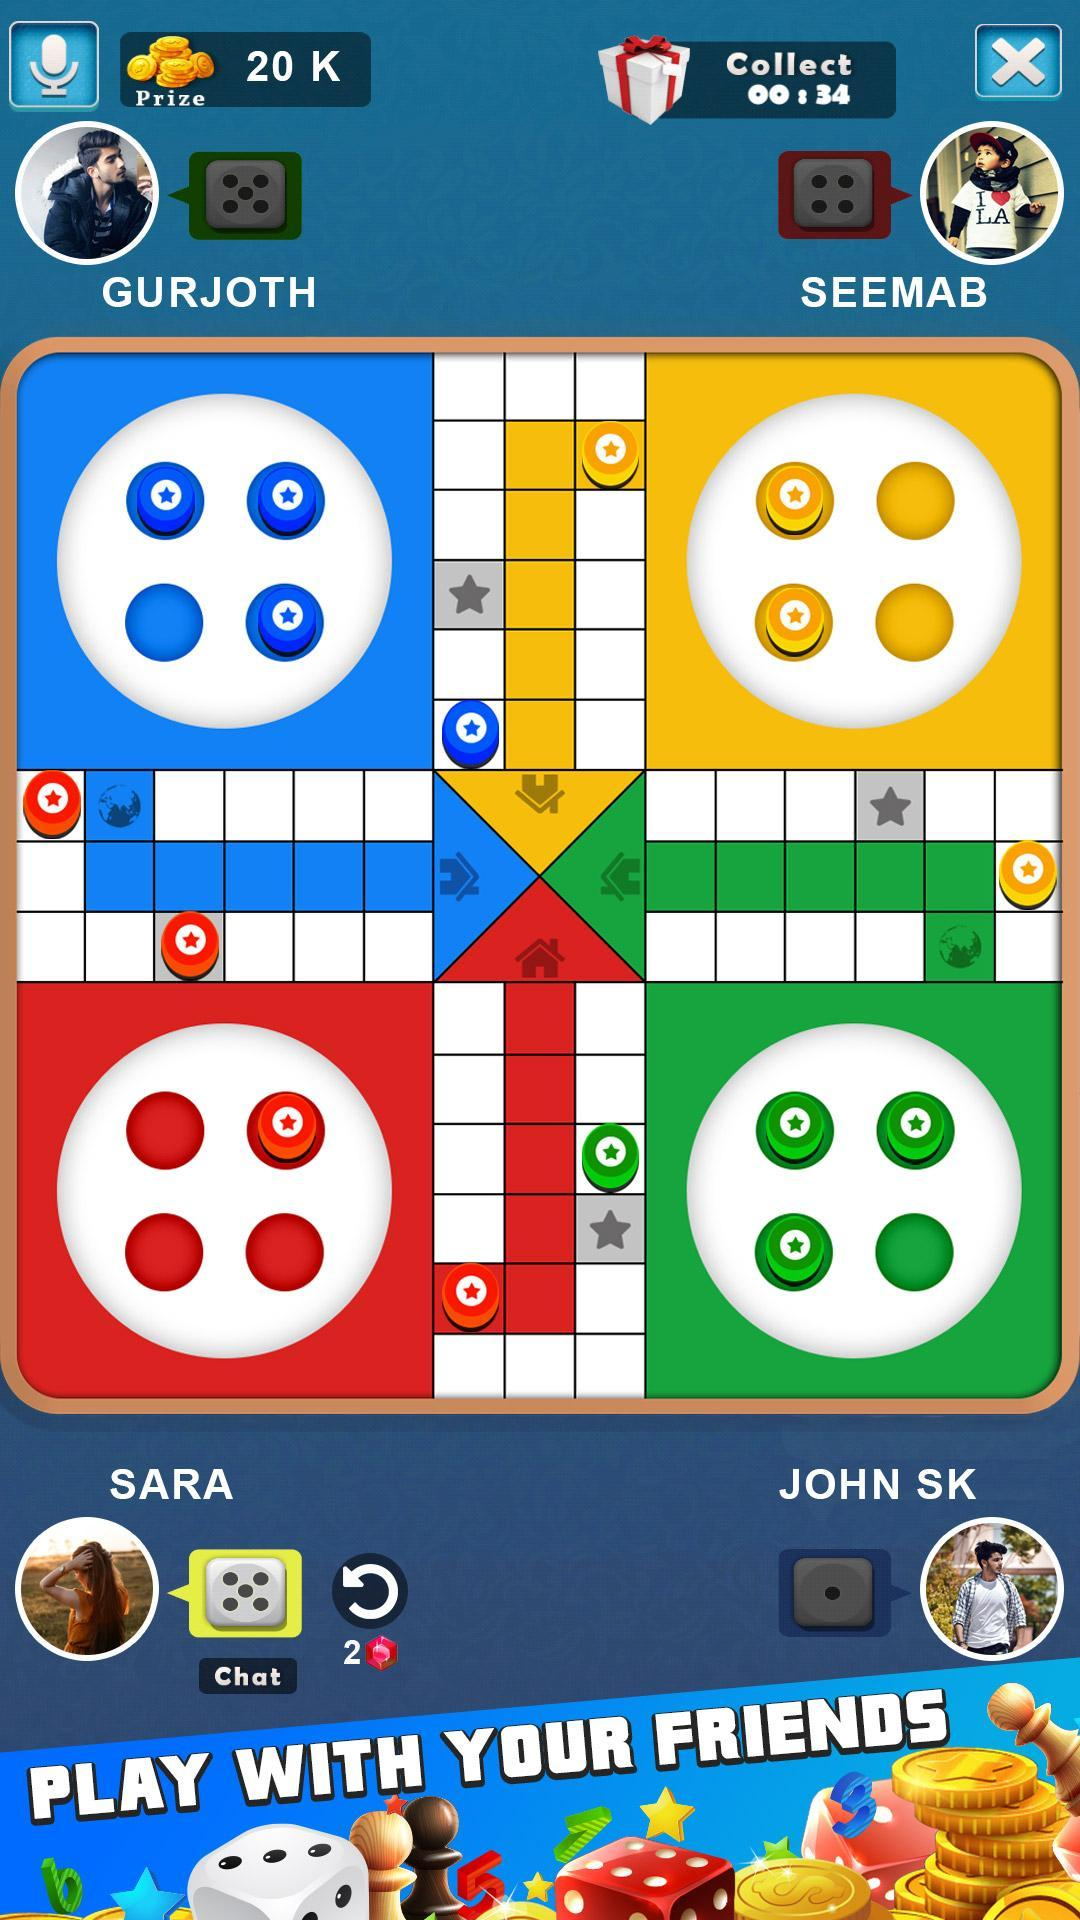 King of Ludo Dice Game with Free Voice Chat 2020 1.5.2 Screenshot 12